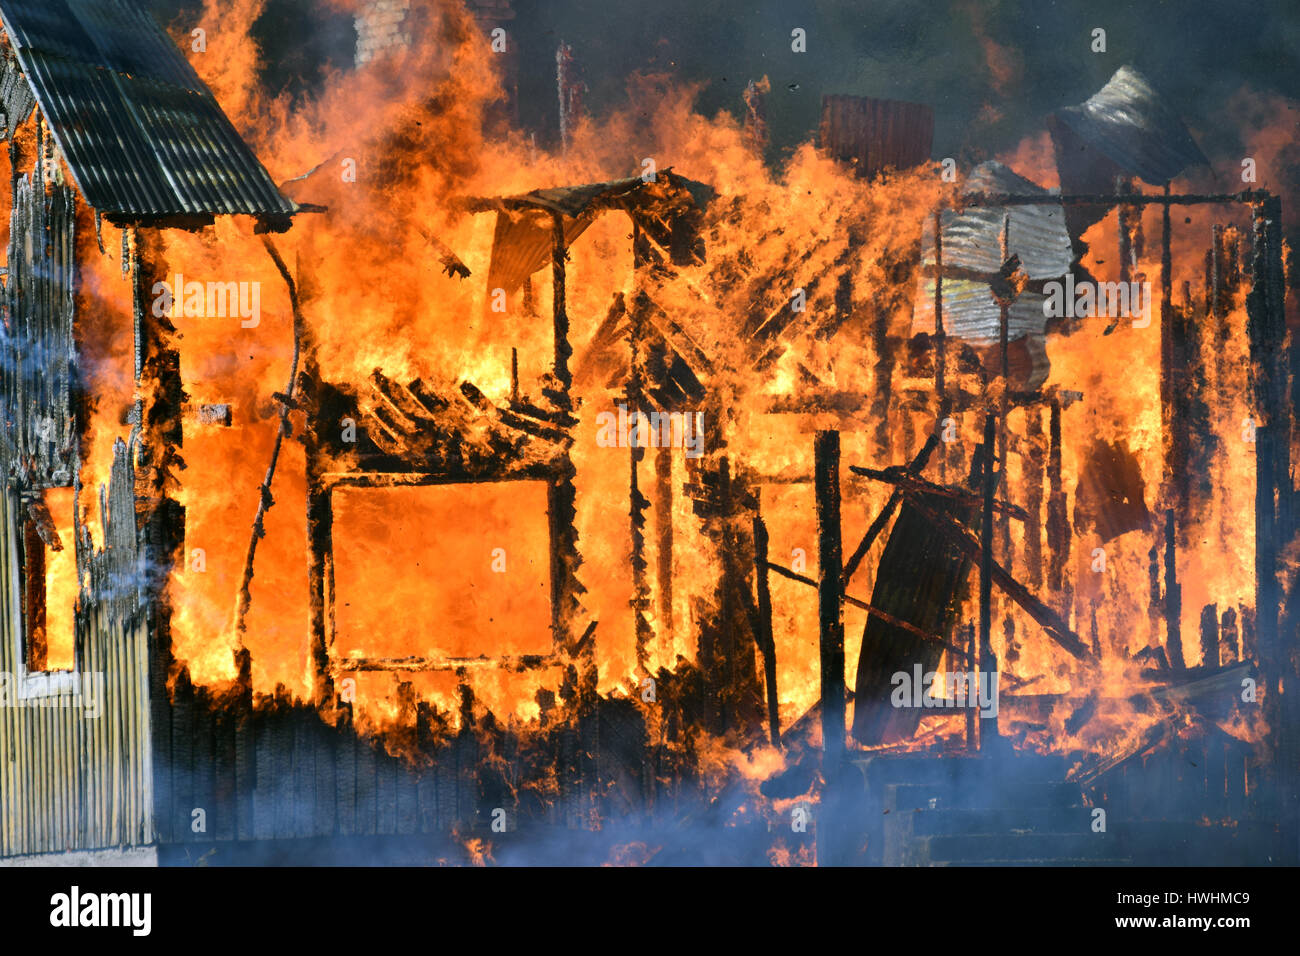 Close up of house destroyed by fire. - Stock Image